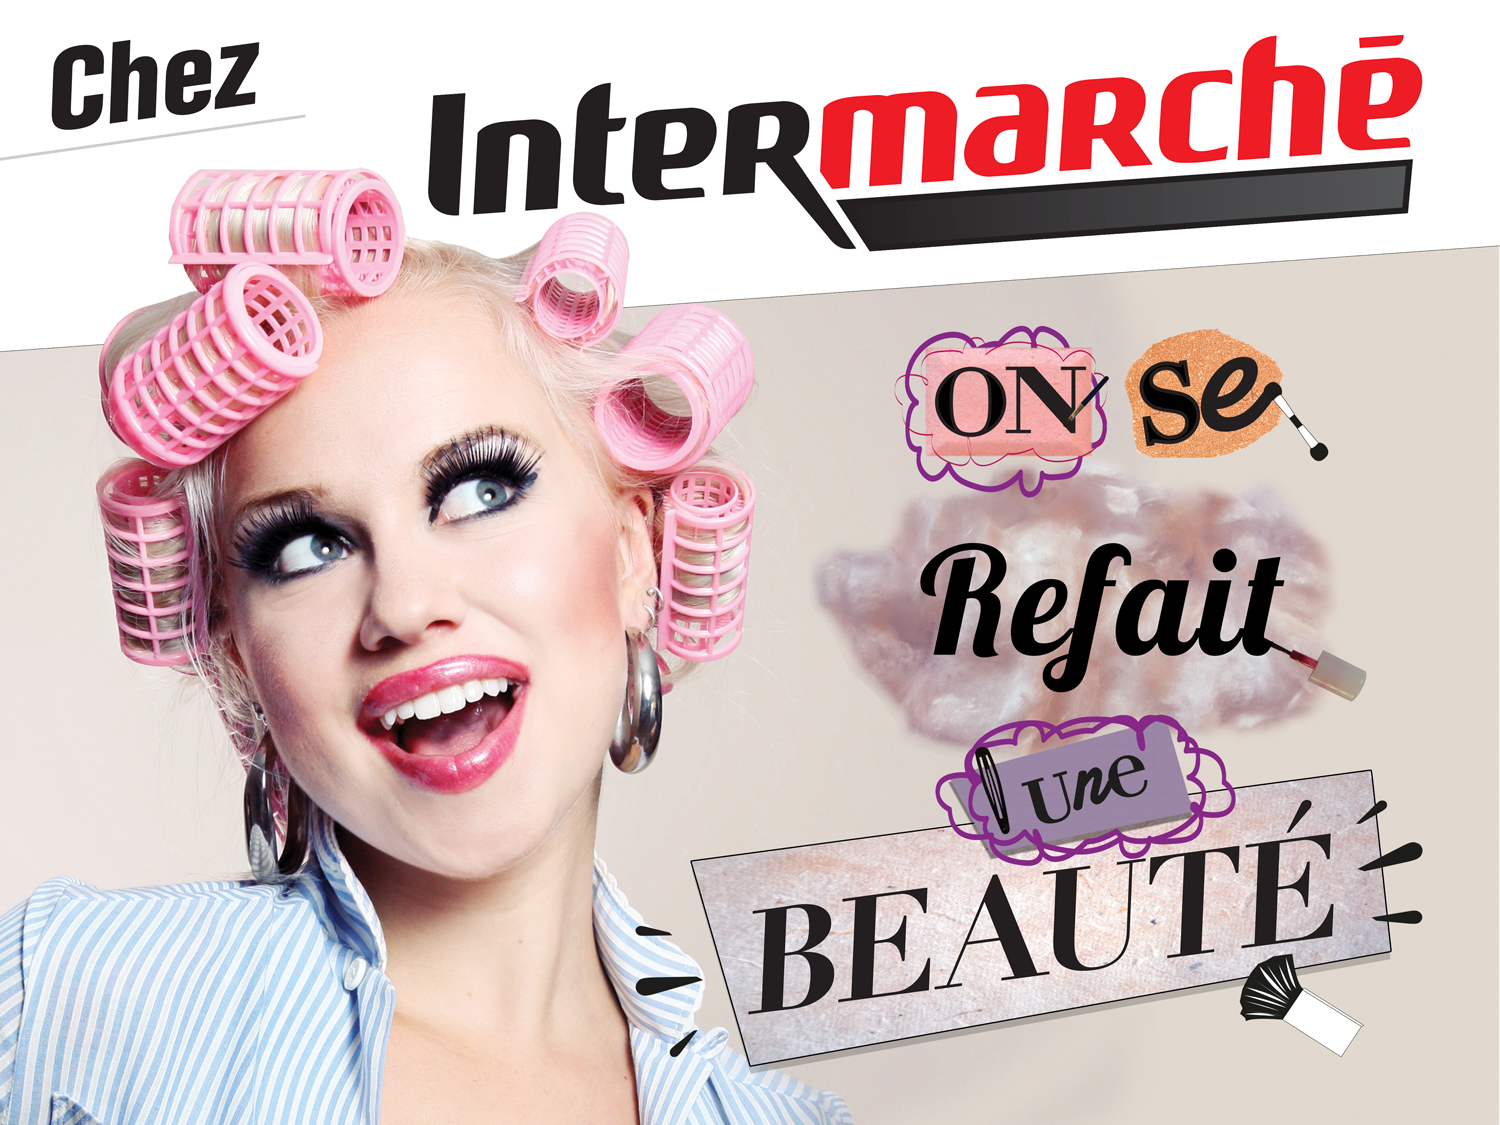 Campagne Intermarché